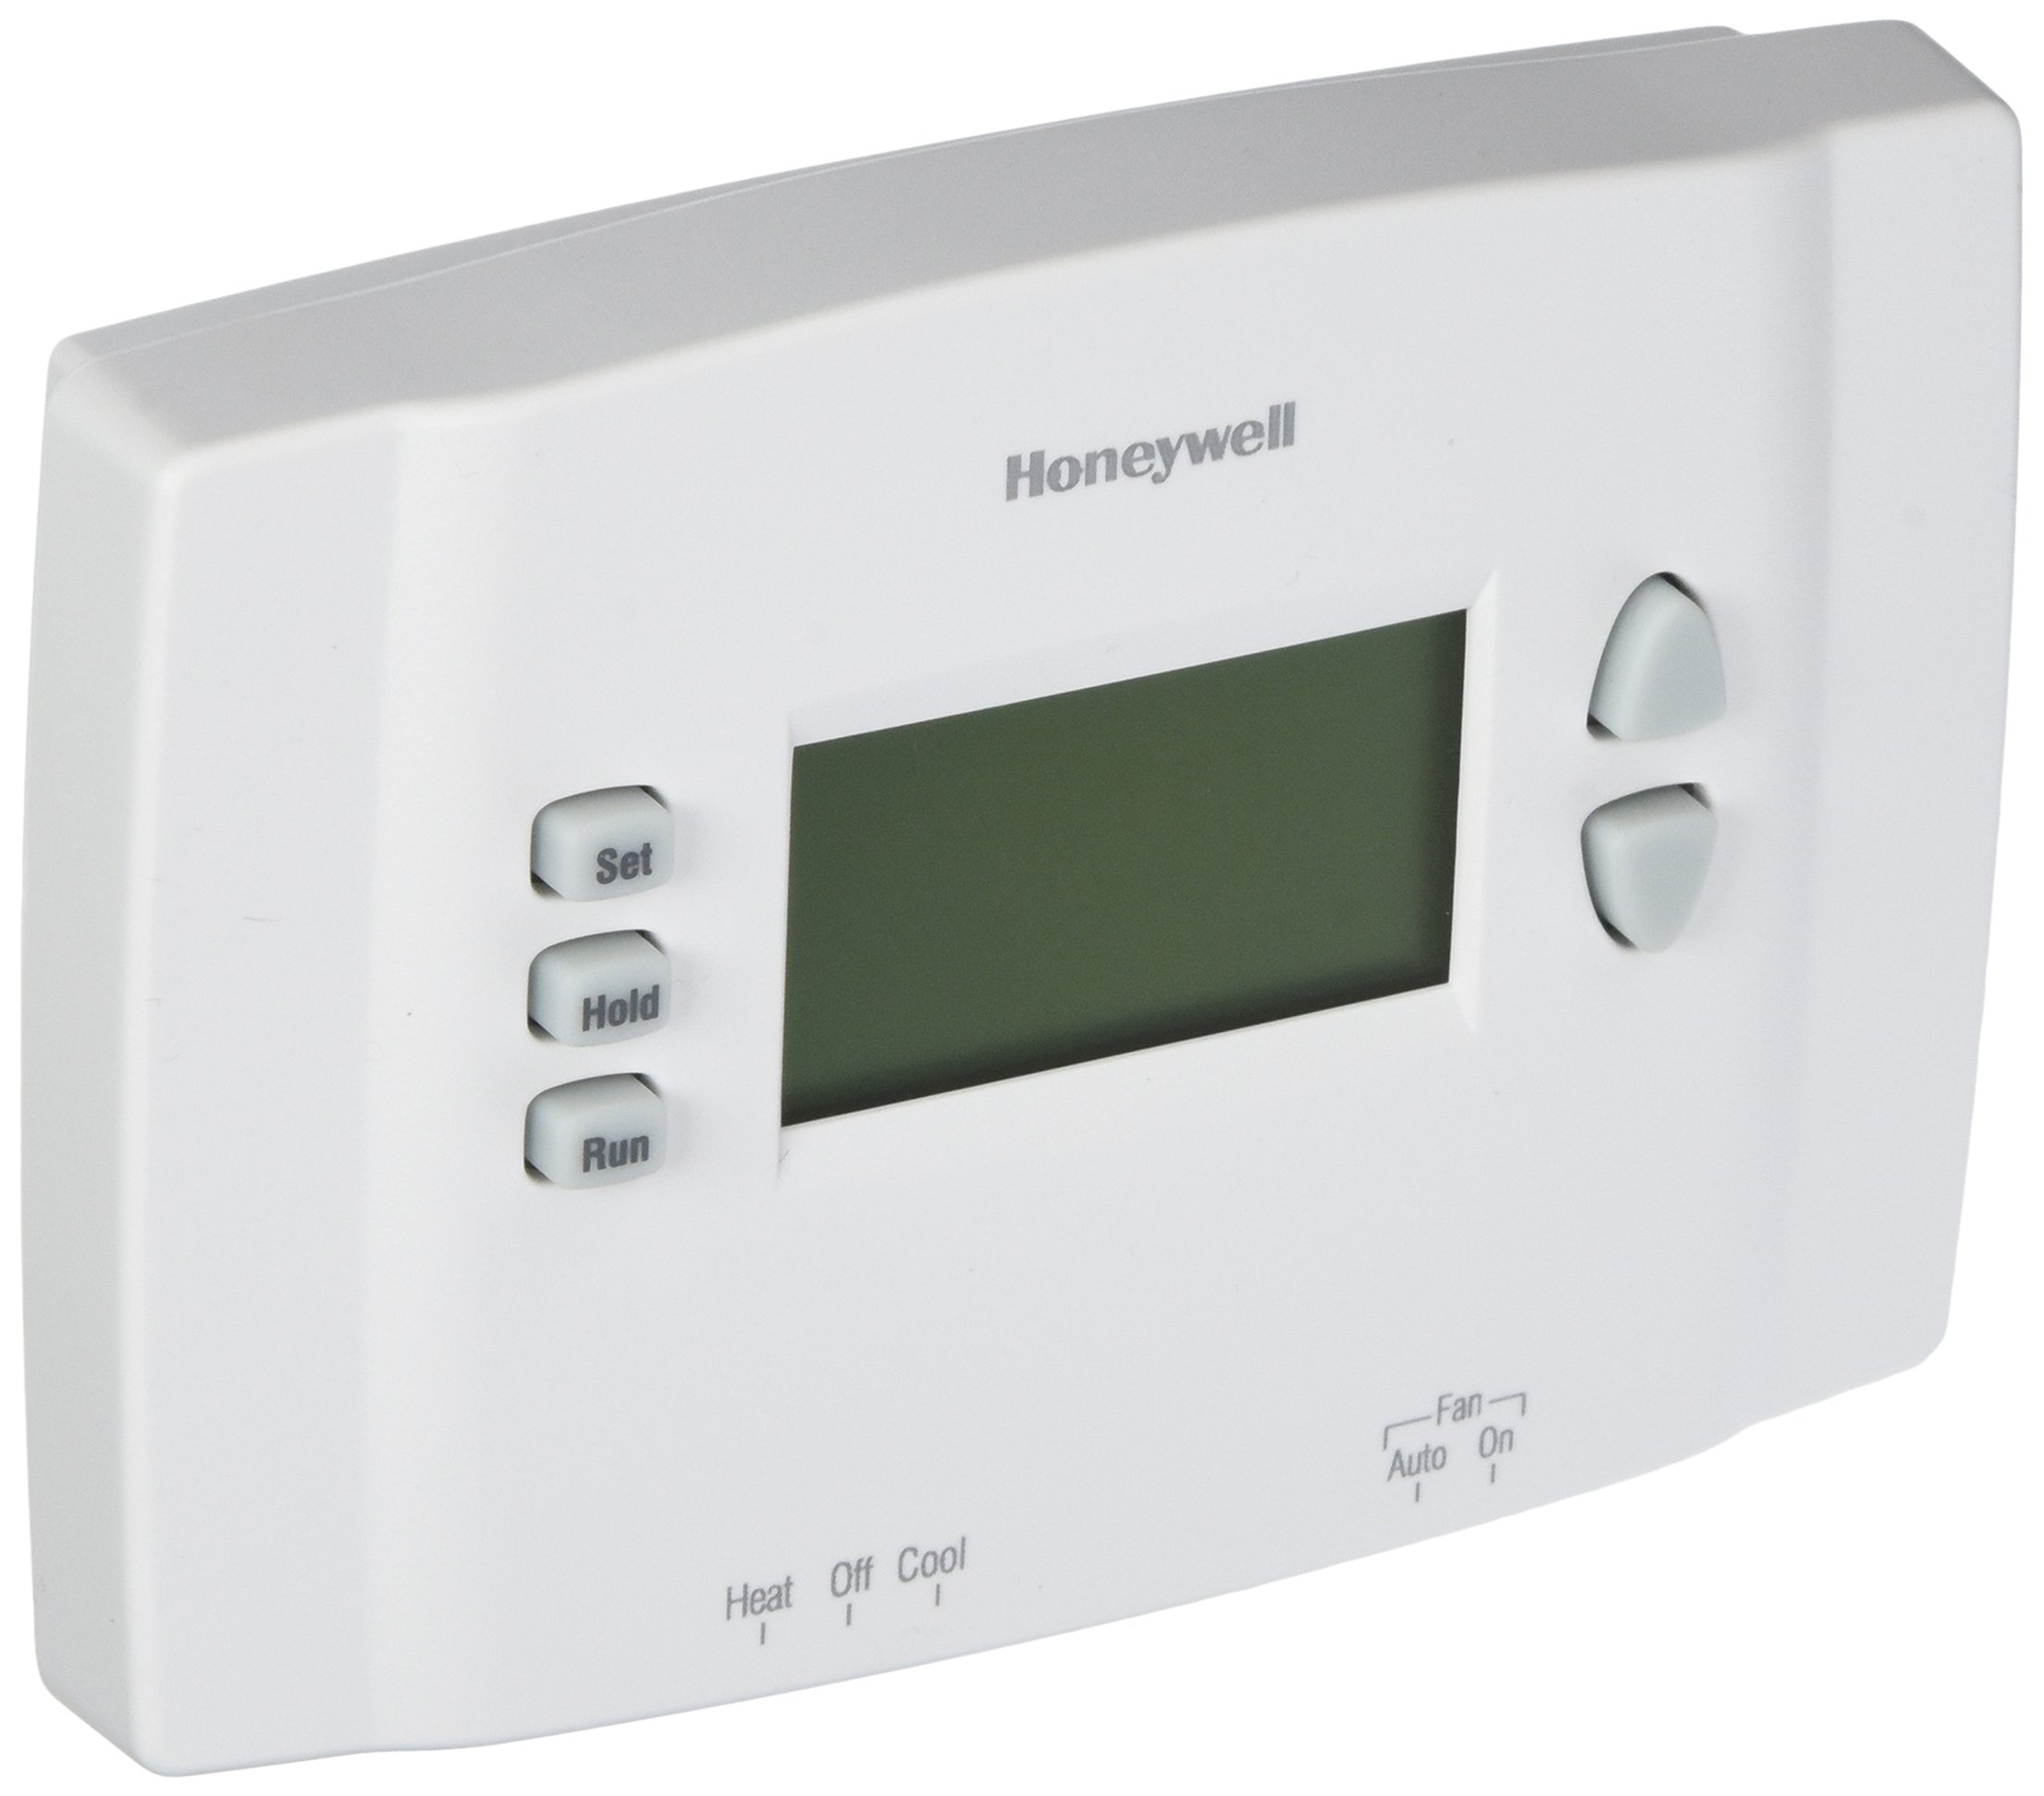 Honeywell RTH2300B1012/E1 5-2 Day Programmable Thermostat